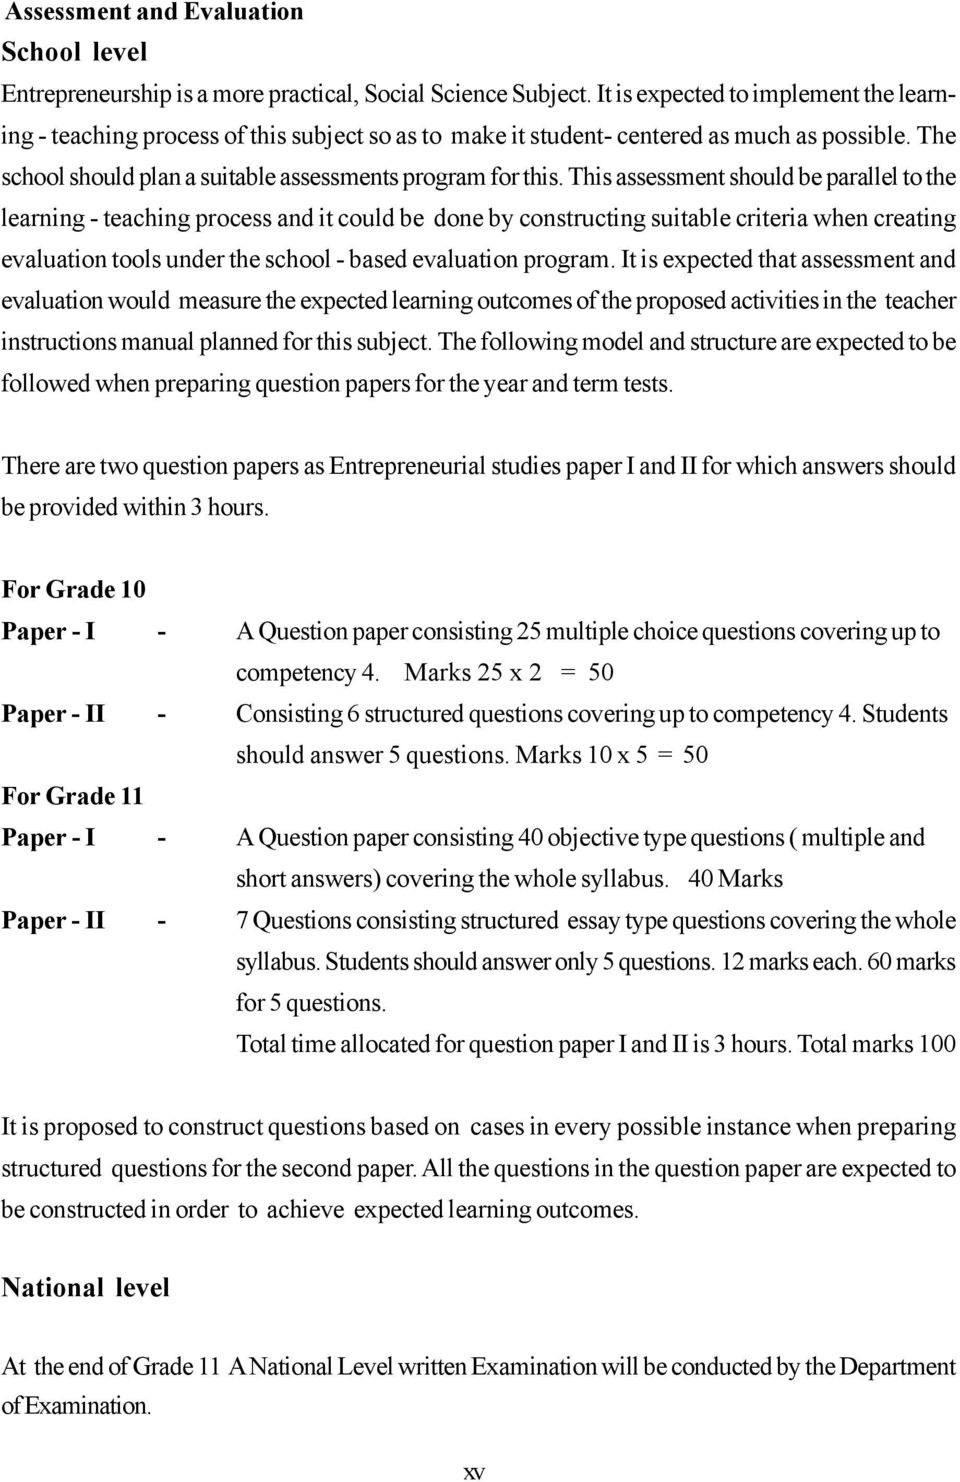 entrepreneurial studies teachers guide grade pdf this assessment should be parallel to the learning teaching process and it could be done